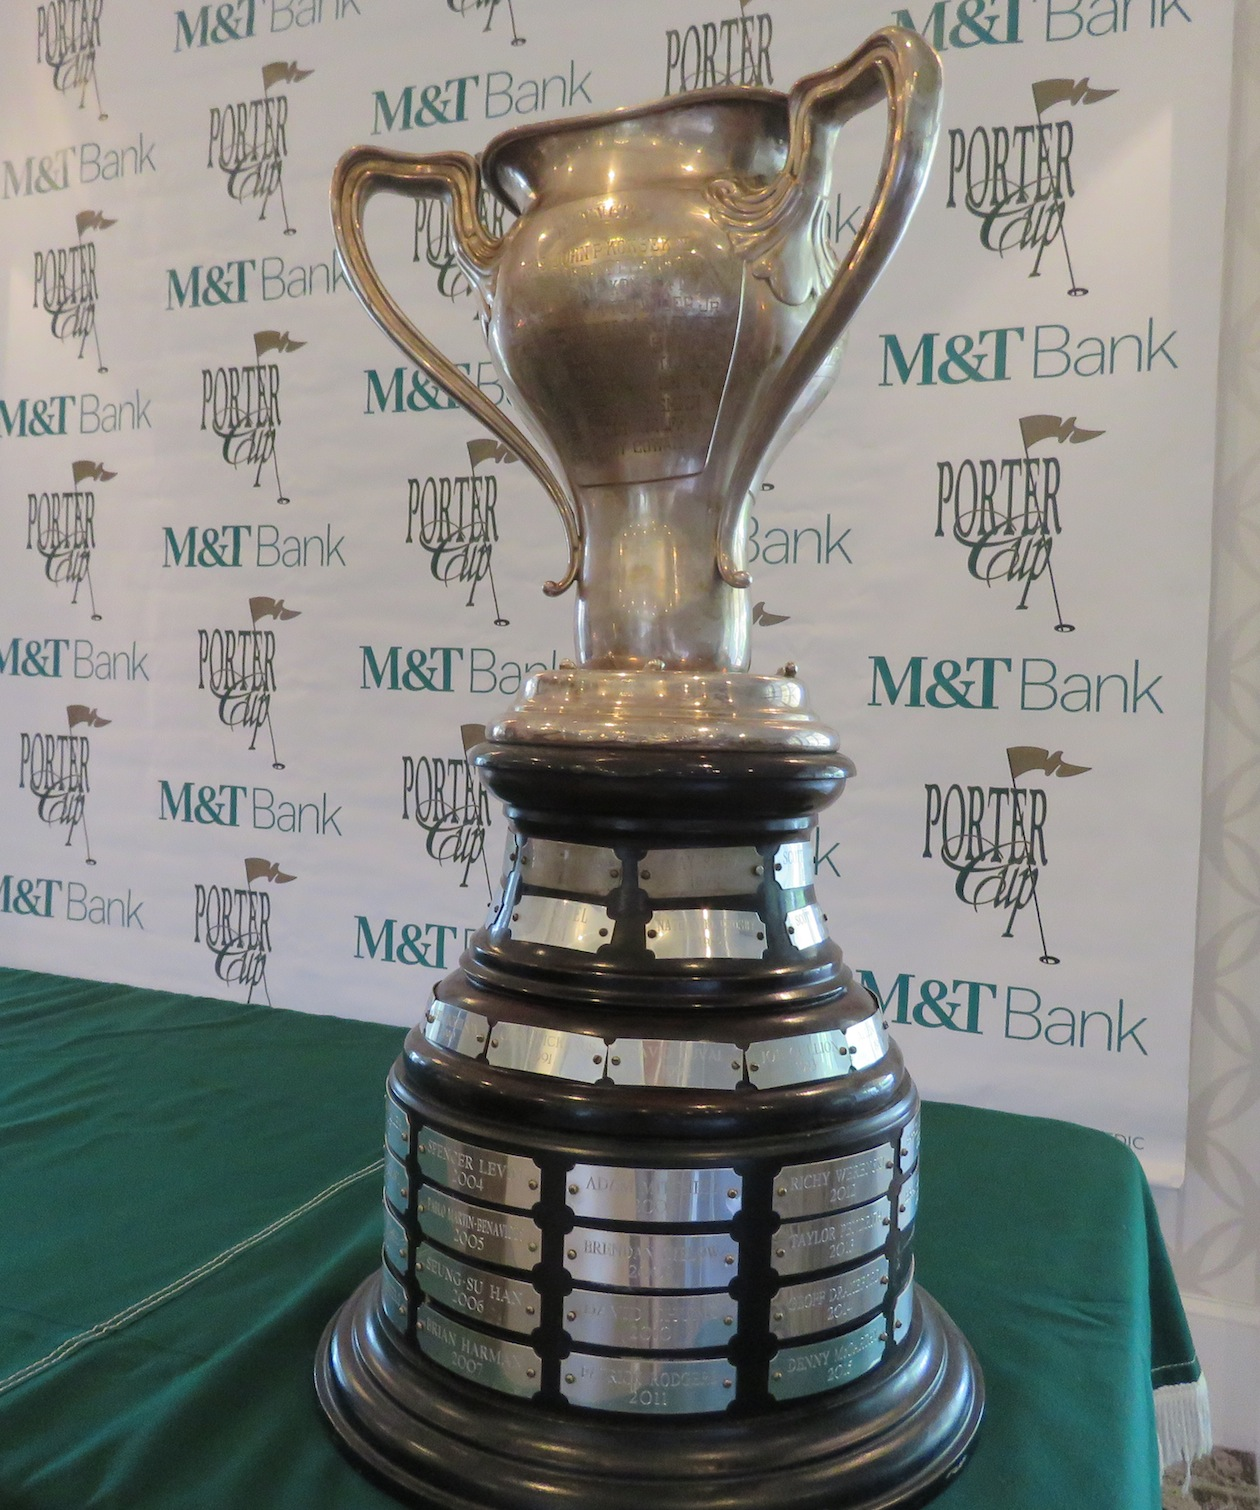 The Porter Cup trophy sits during Tuesday's conference.